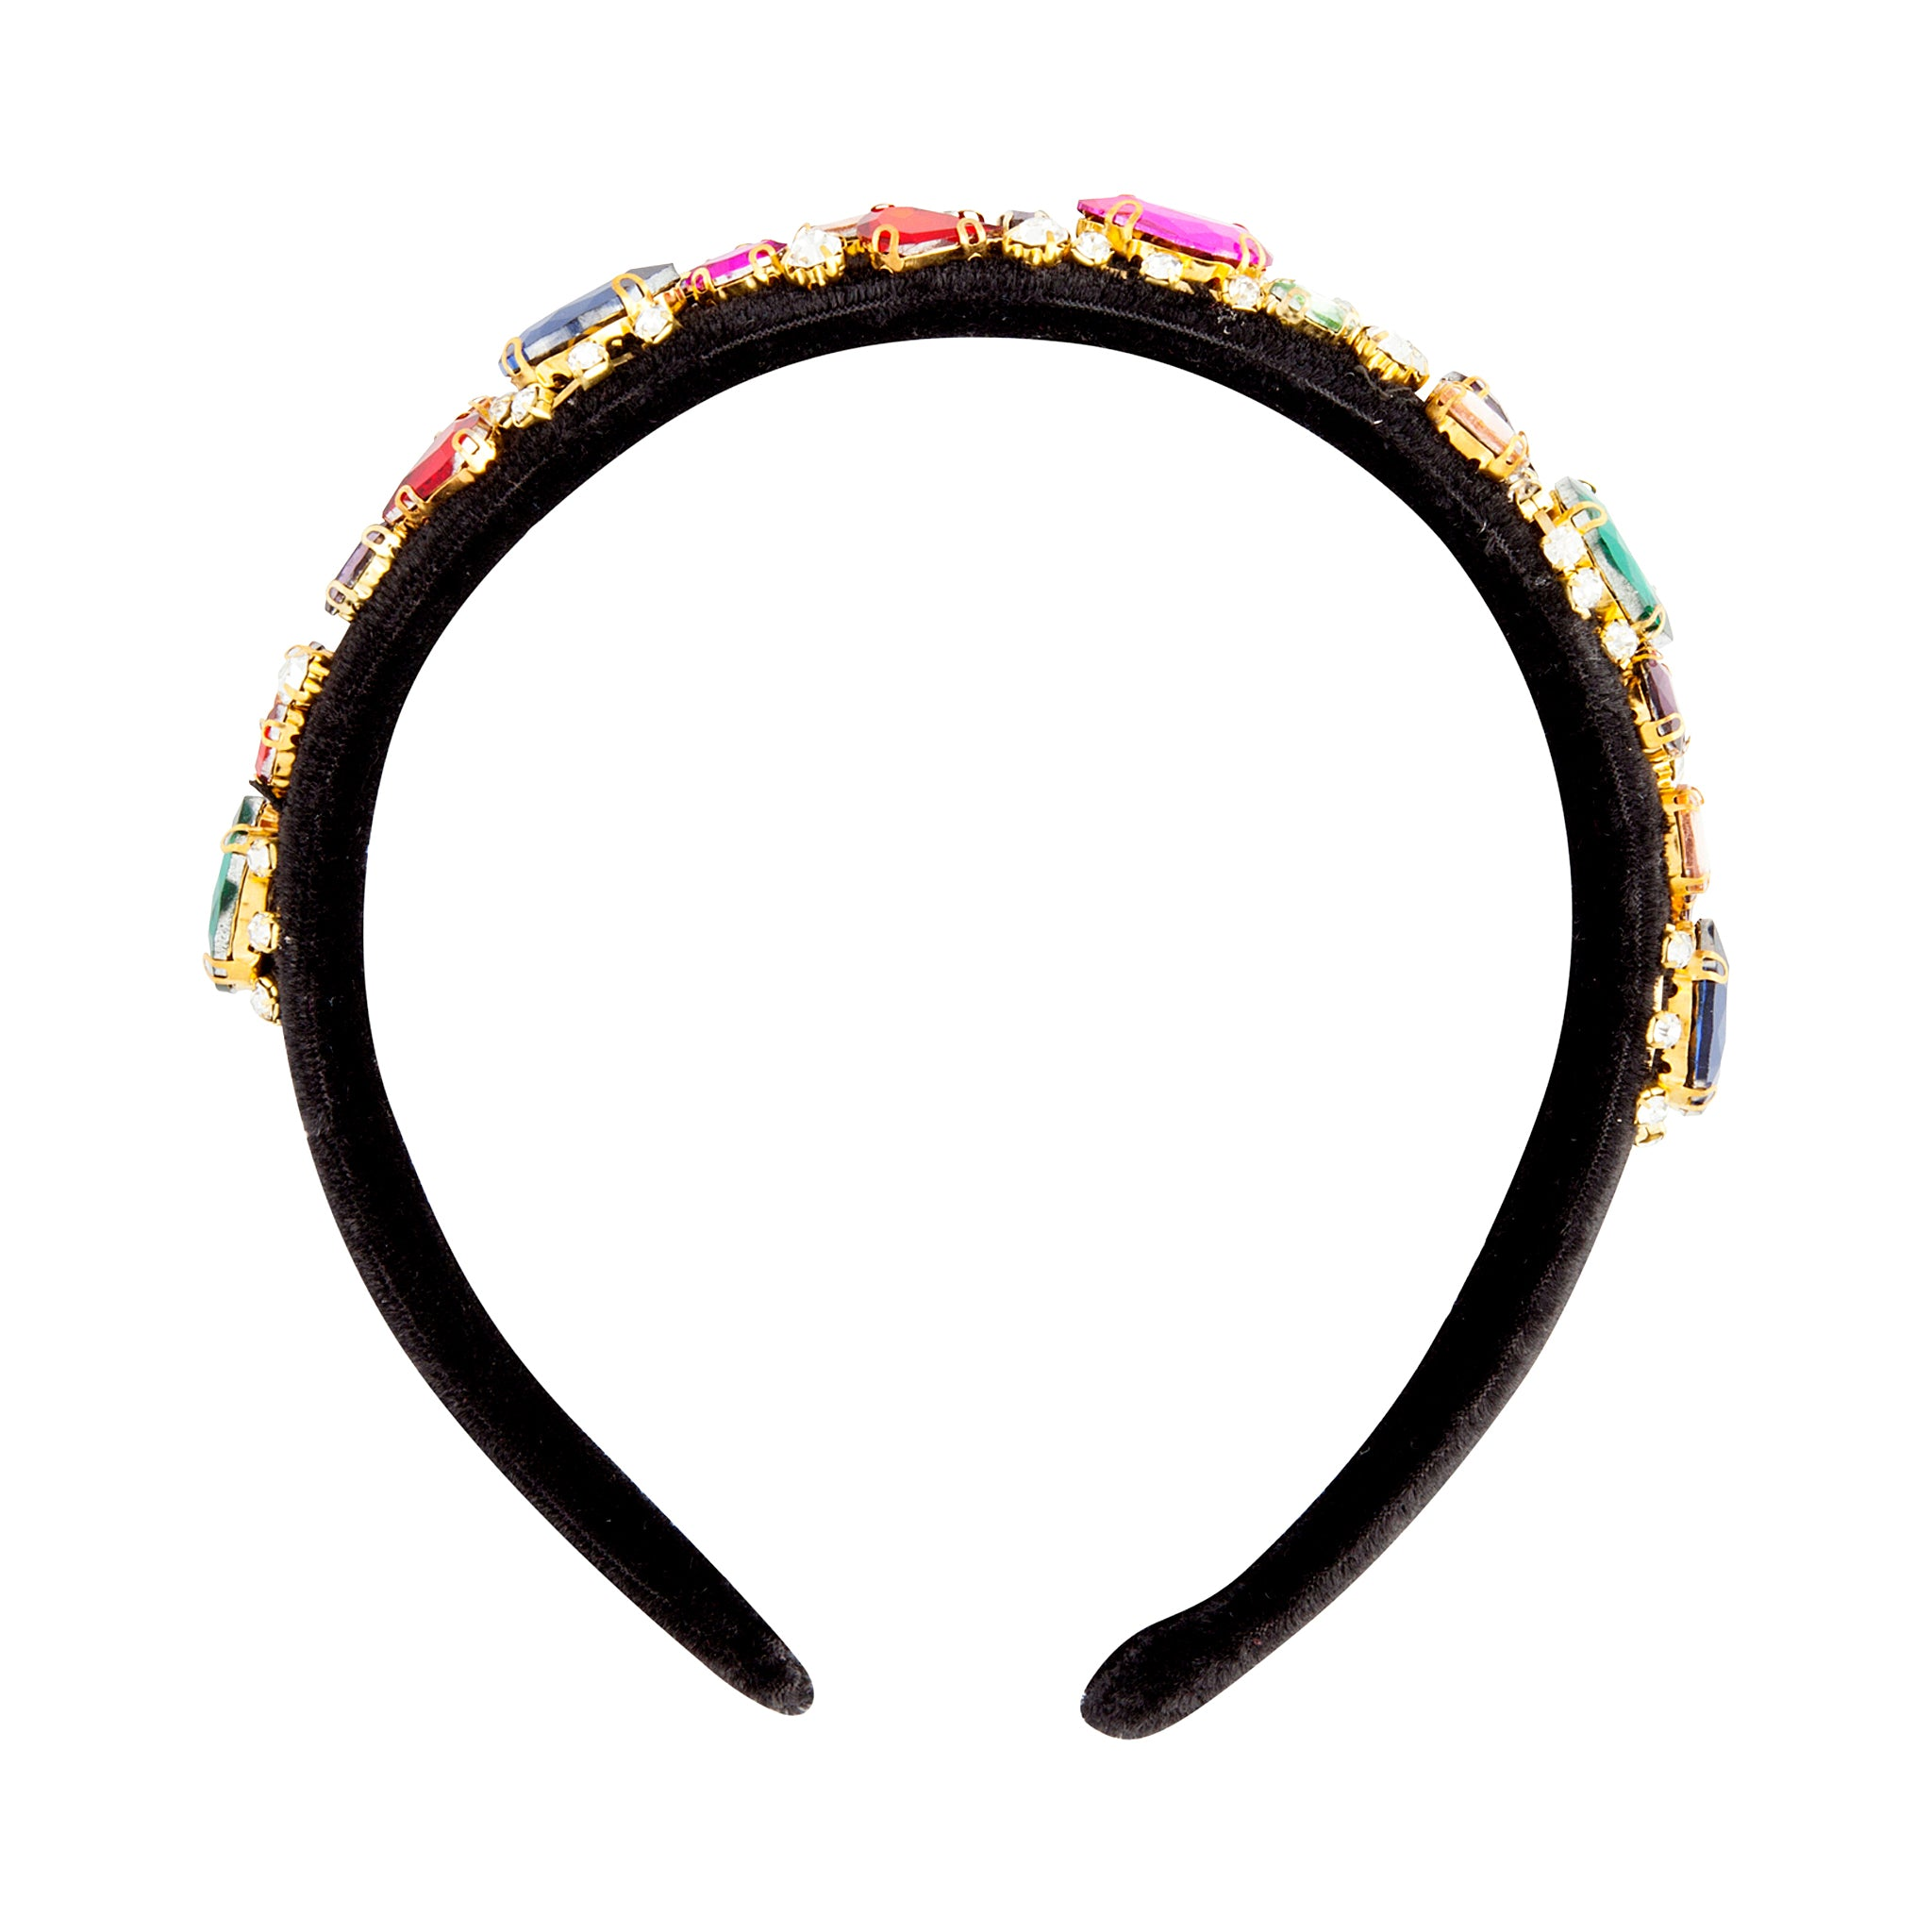 Fuzzy Multi-Coloured Jewel Headband